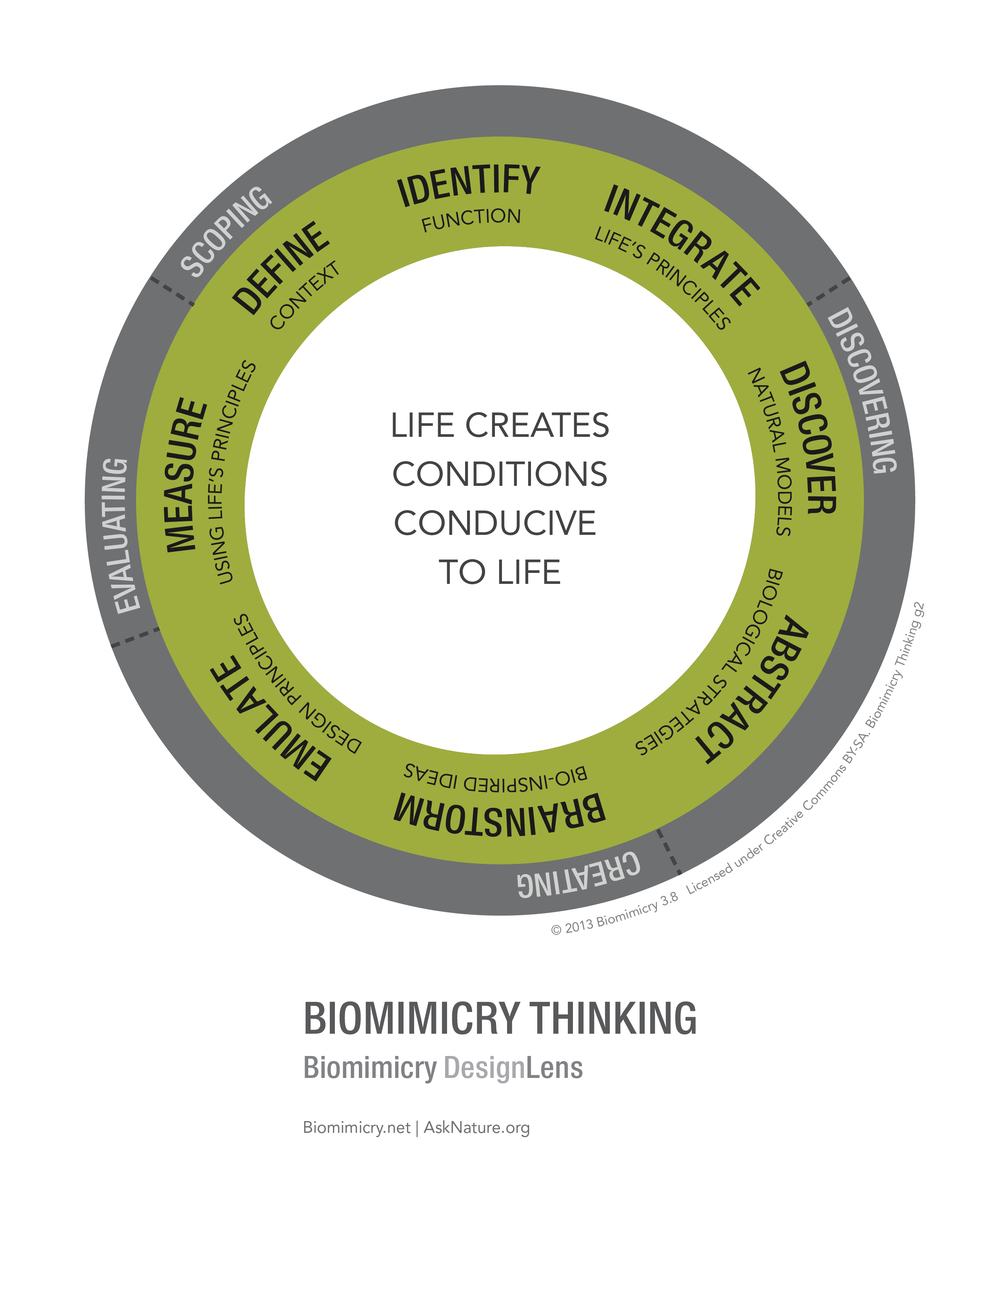 Biomimicry38_DesignLens_Biomimicry_Thinking_WEB.jpg